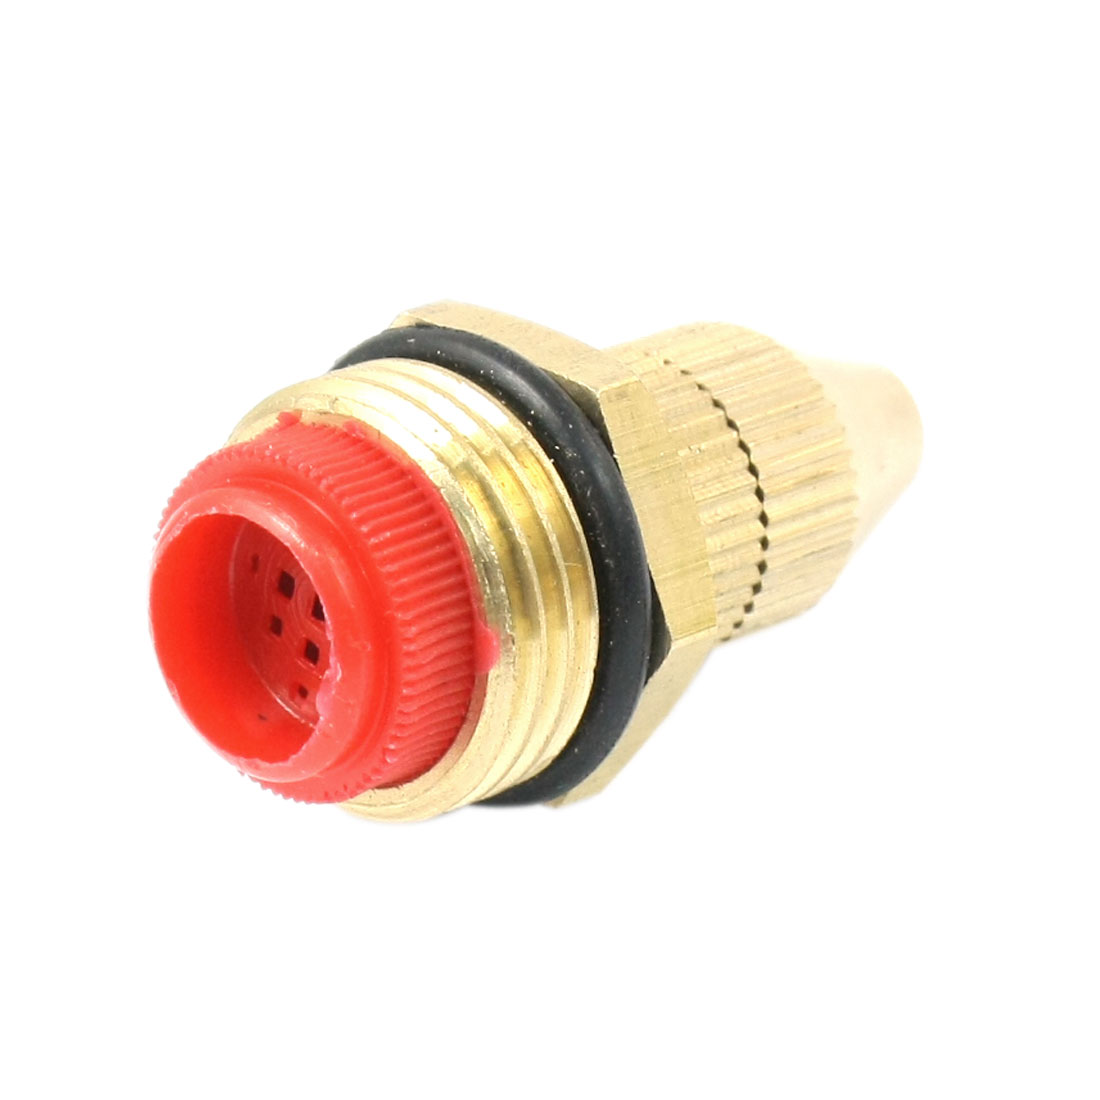 Gardening 20mm Male Thread Dia Water Spray Nozzle Brass Tone